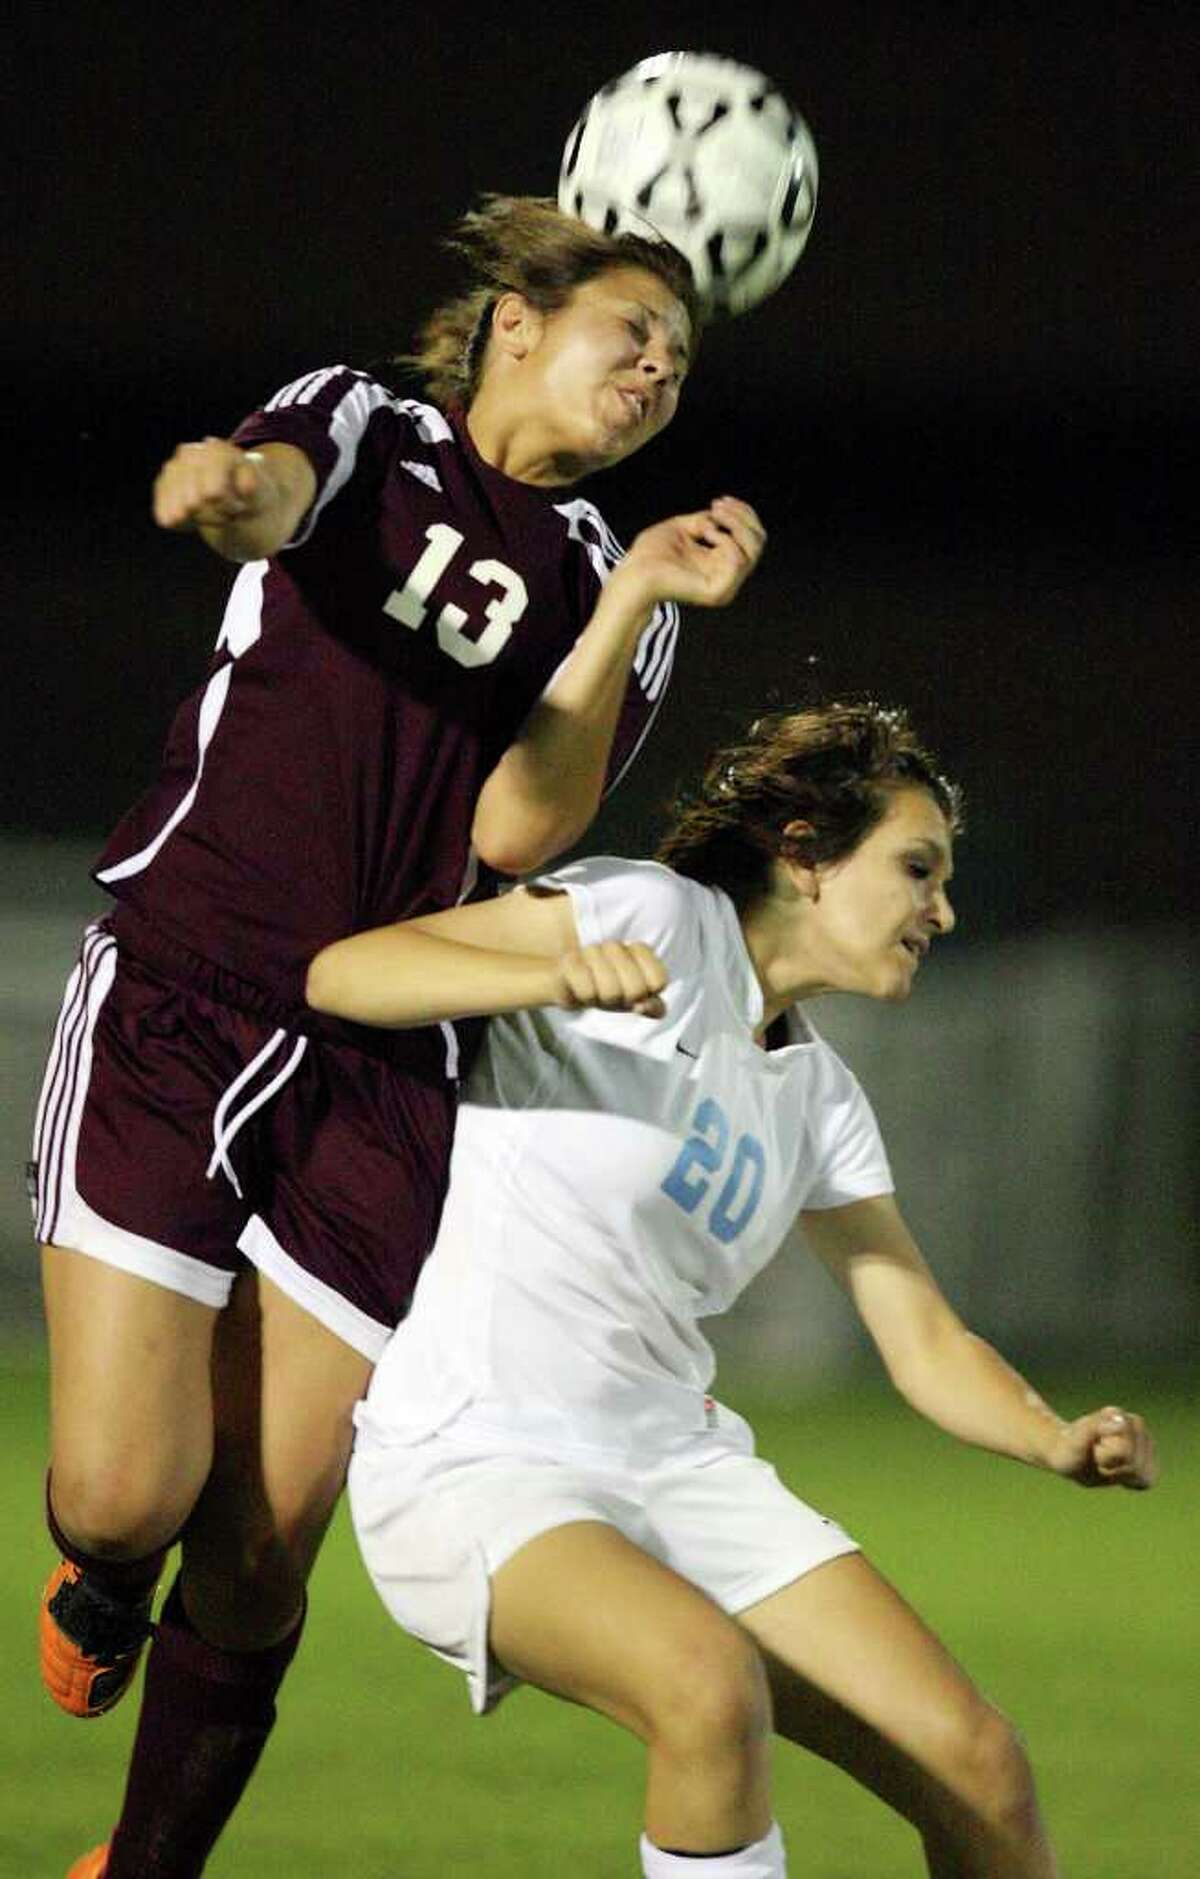 Marshall's Brianna Brune heads the ball over Johnson's Tiana Soulas during second half action Friday April 1, 2011 at Blossom Soccer Stadium. Johnson won 3-0. (PHOTO BY EDWARD A. ORNELAS/eaornelas@express-news.net)